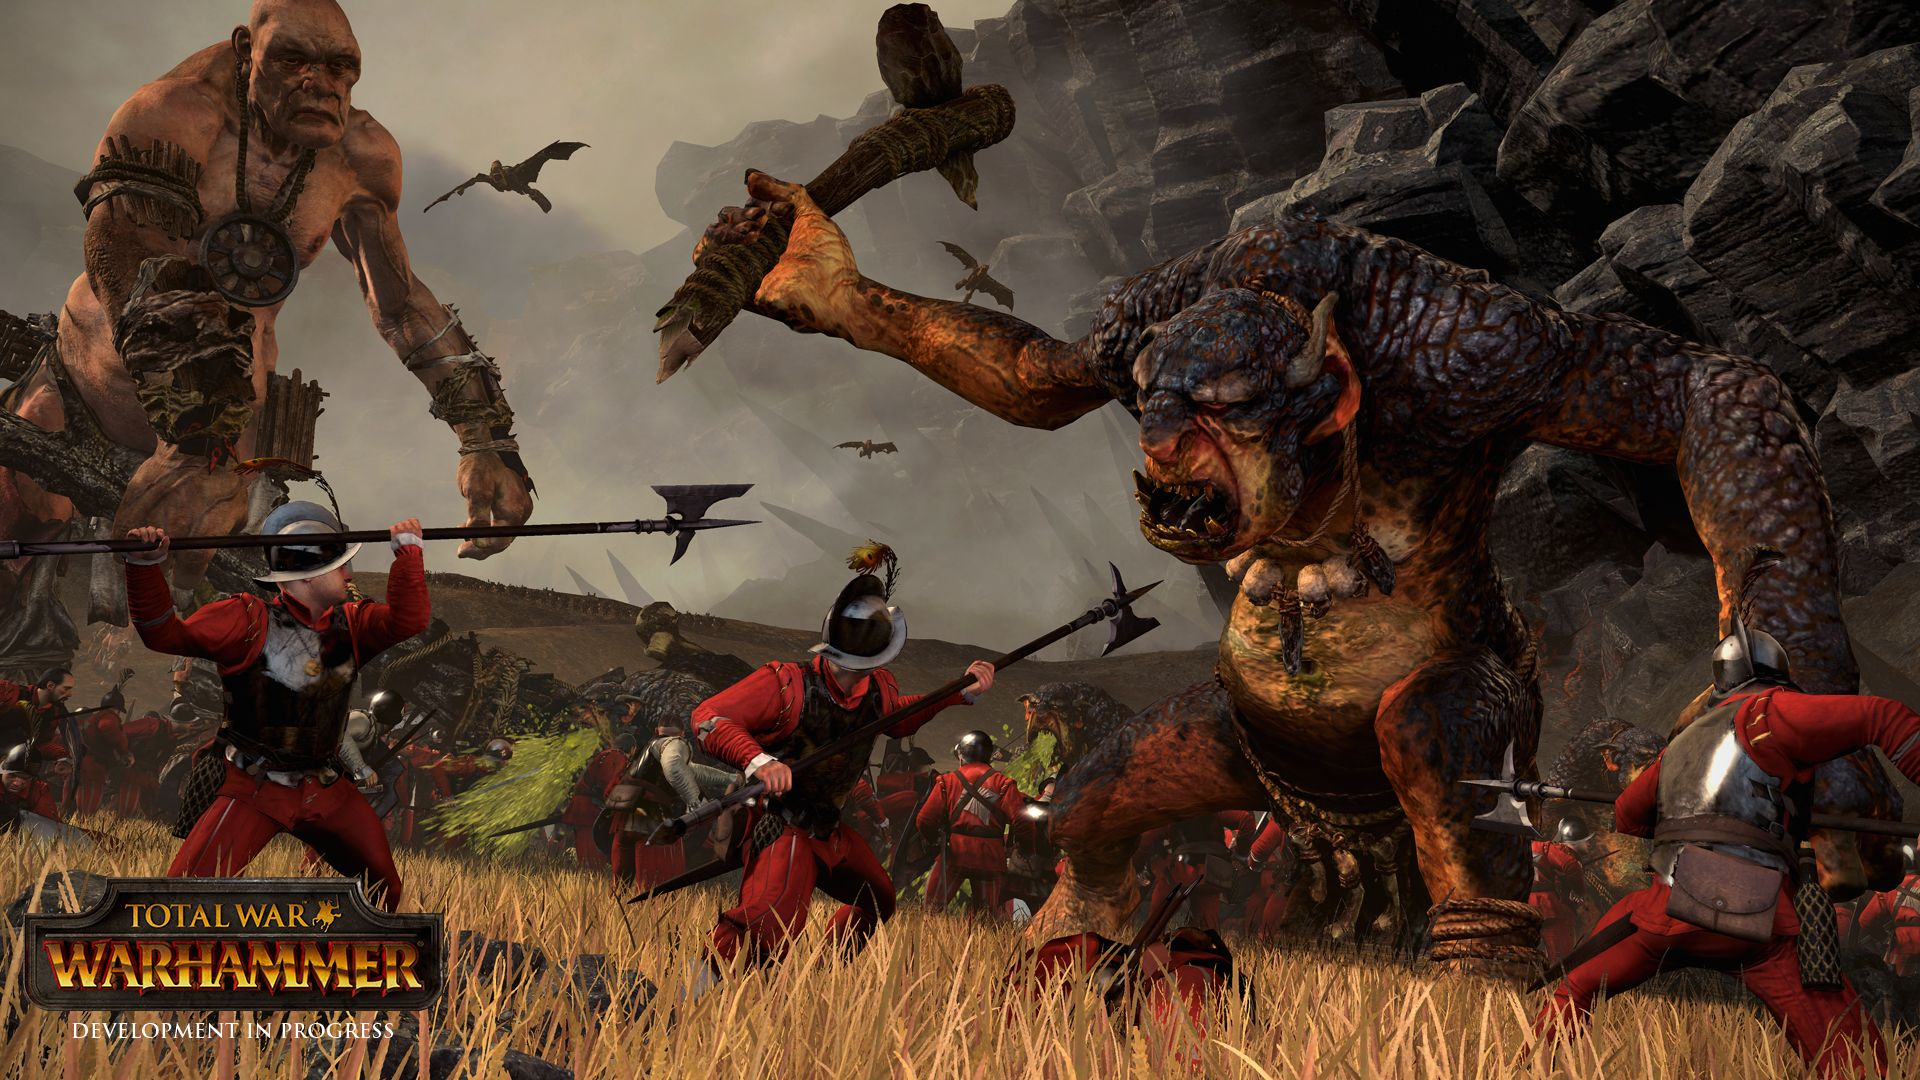 Total War Warhammer See The First In Game Screenshots VG247